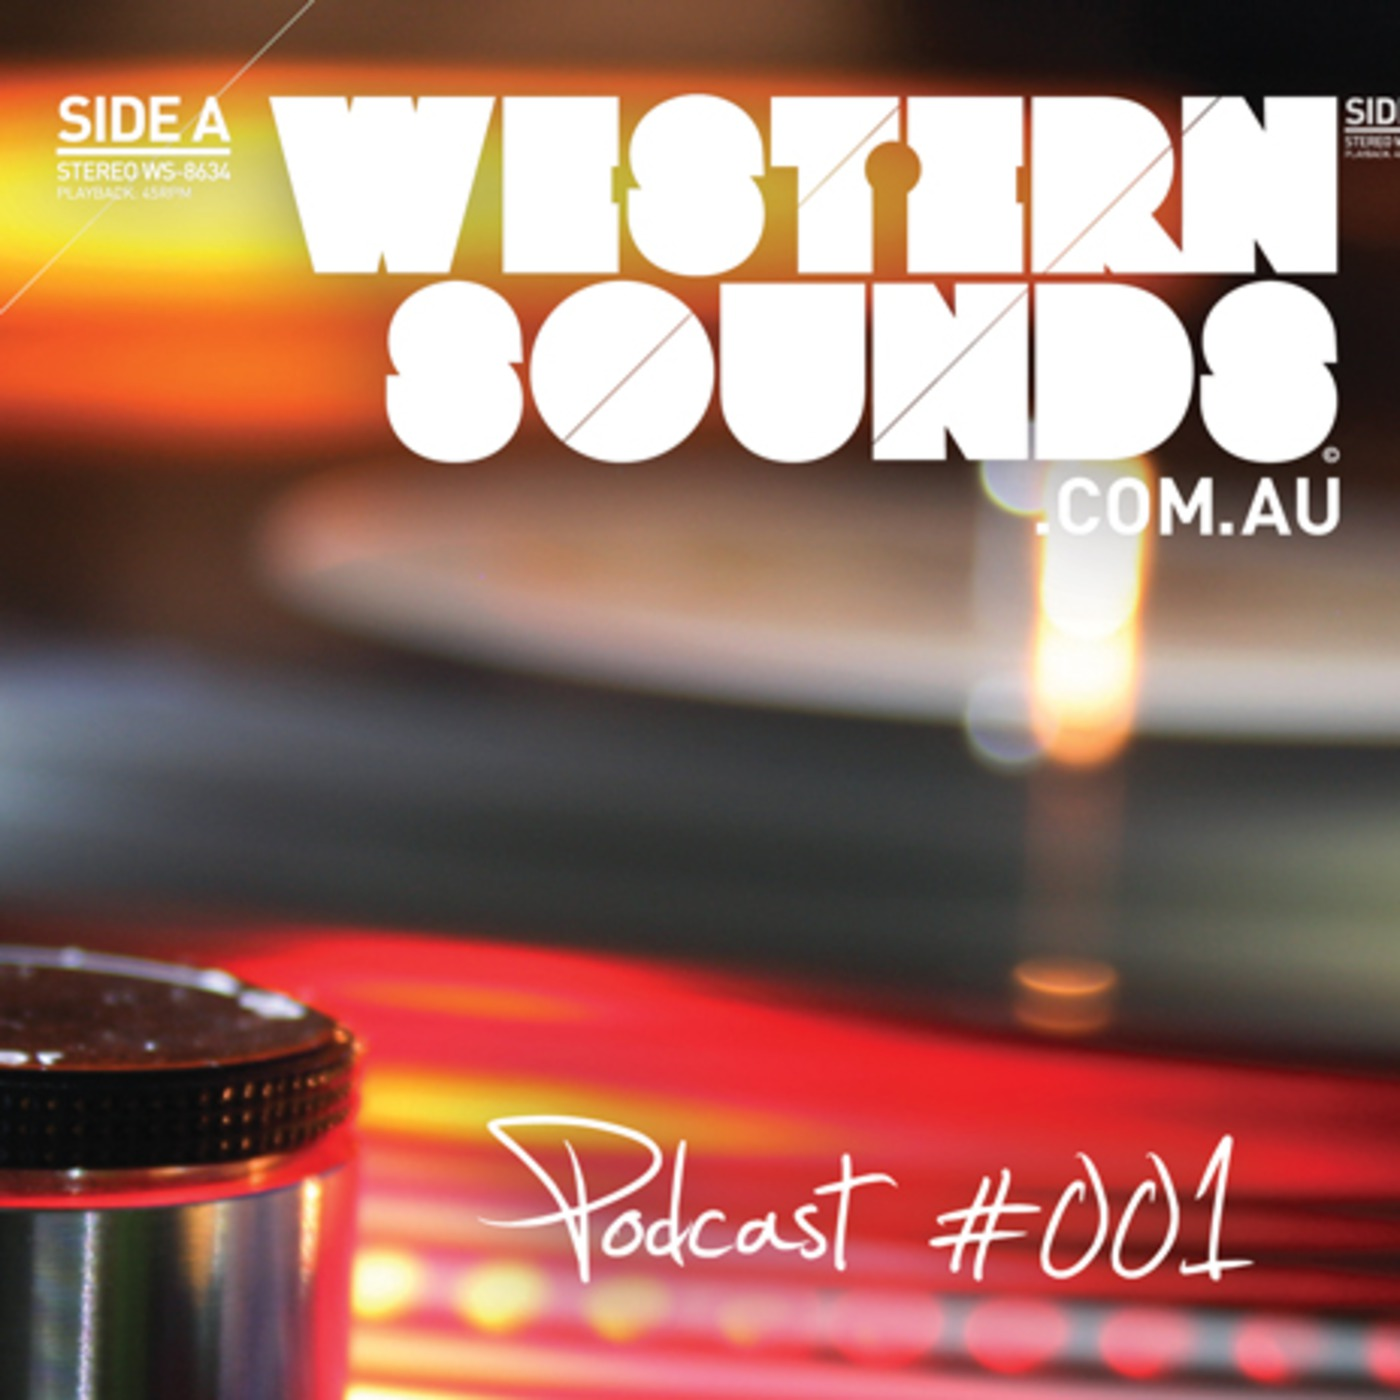 Western Sounds' Podcast